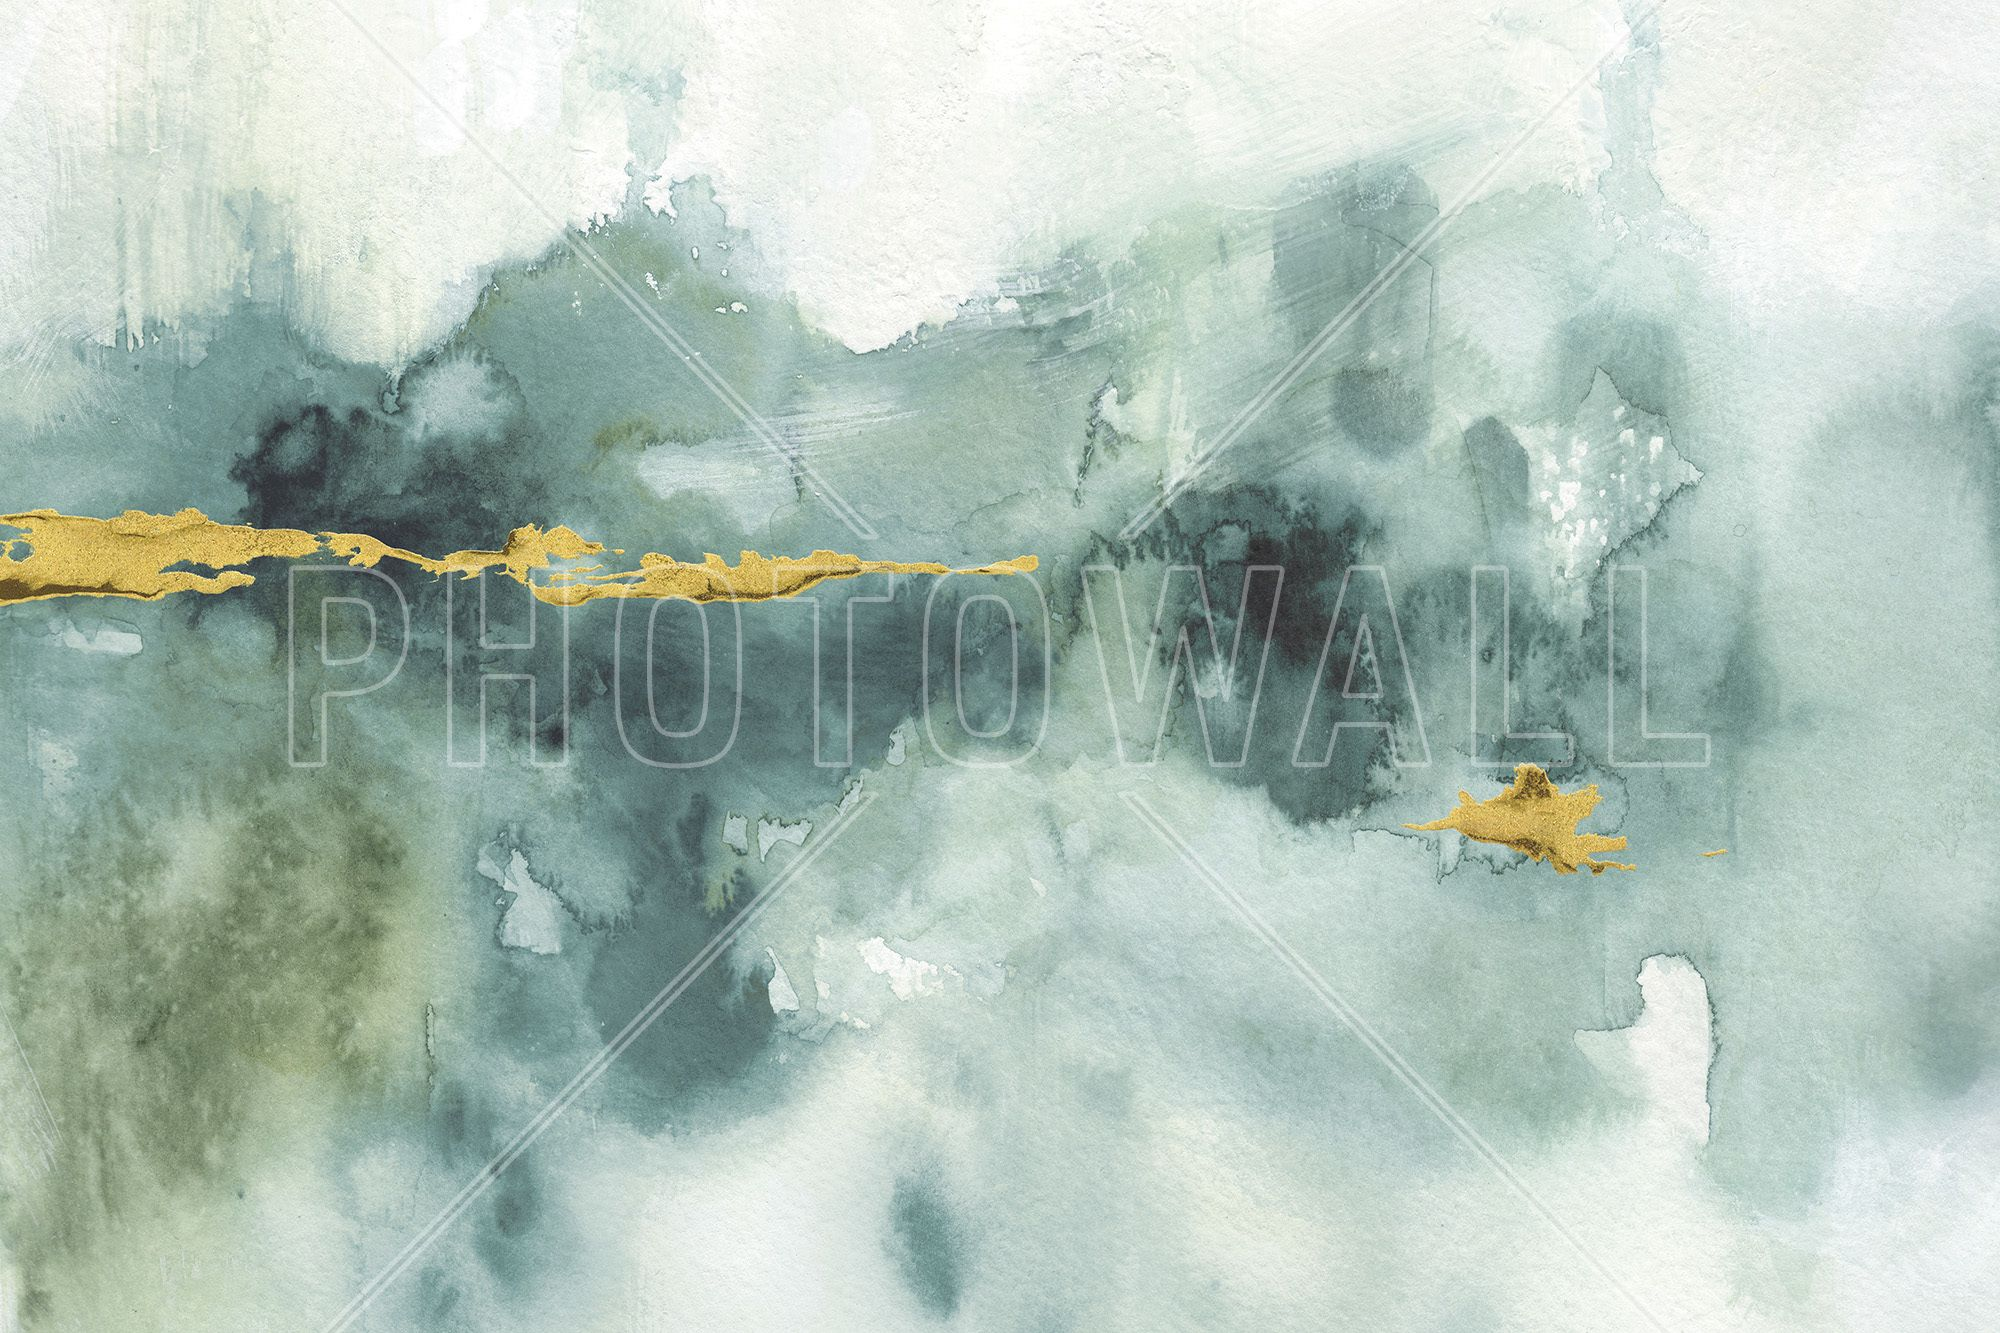 My Greehouse Watercolor 3 - Wall Mural & Photo Wallpaper - Photowall